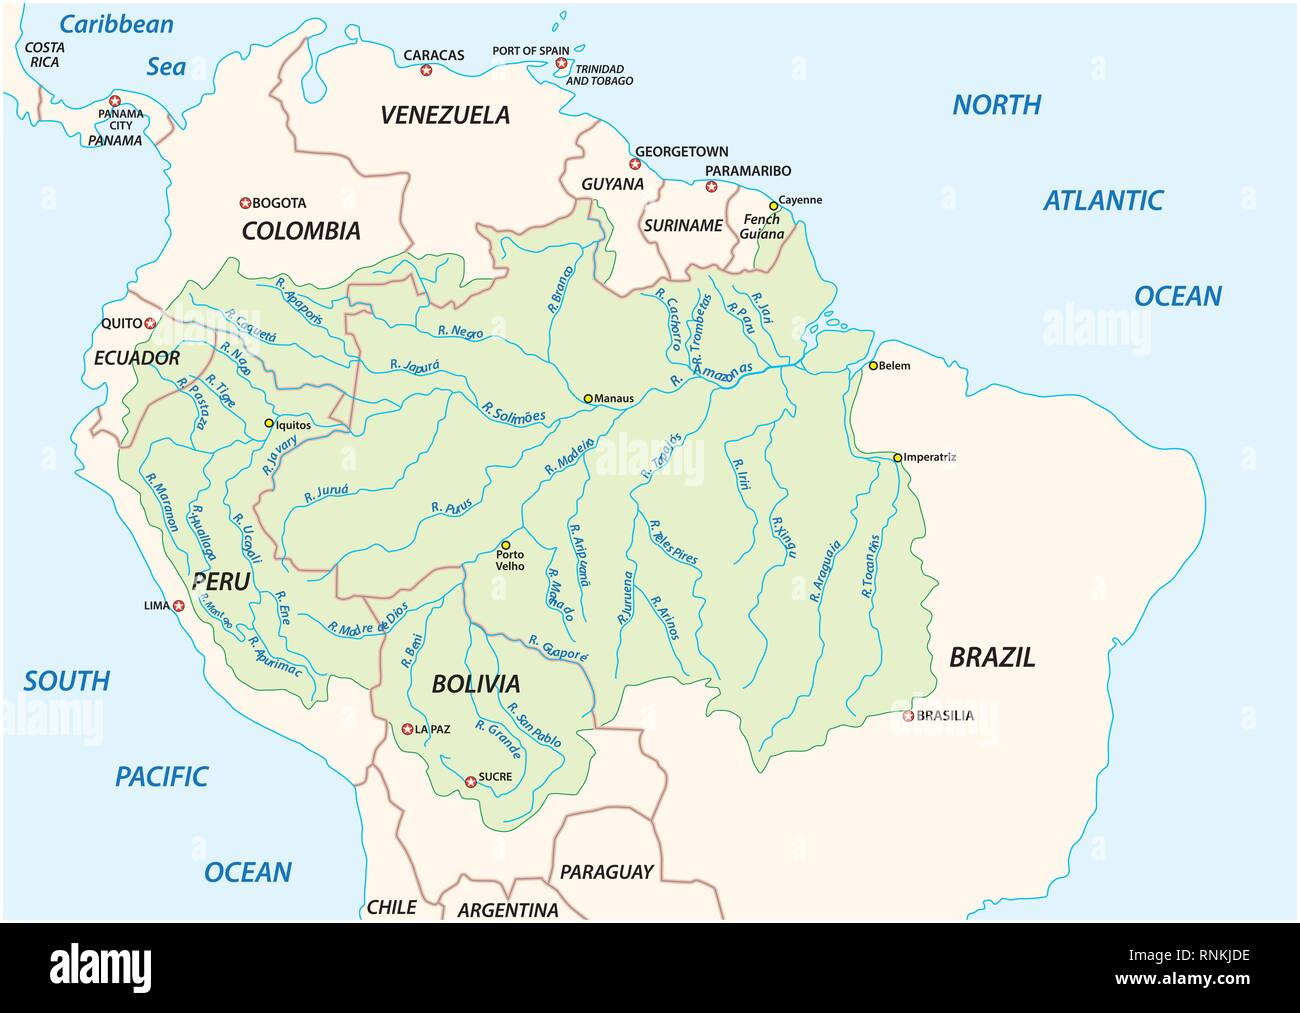 Vector map of the Amazon River drainage basin Stock Vector ... on iguazu falls, victoria falls, map of atacama desert, map of sea of cortez, pacific ocean, map of niger river, map of euphrates river, angel falls, map of ganges river, map of yangtze river, rio negro, map of mississippi river, map of hudson river, map of amazon basin, map of parana river, map of ohio river, map of amazon rainforest, amazon rainforest, map of huang he river, atlantic ocean, map of rio de la plata, map of lake titicaca, map of suriname, rio de janeiro, map of yellow river, south america, map of river thames, congo river, map of lake maracaibo, map of indus river, niger river, amazon basin,